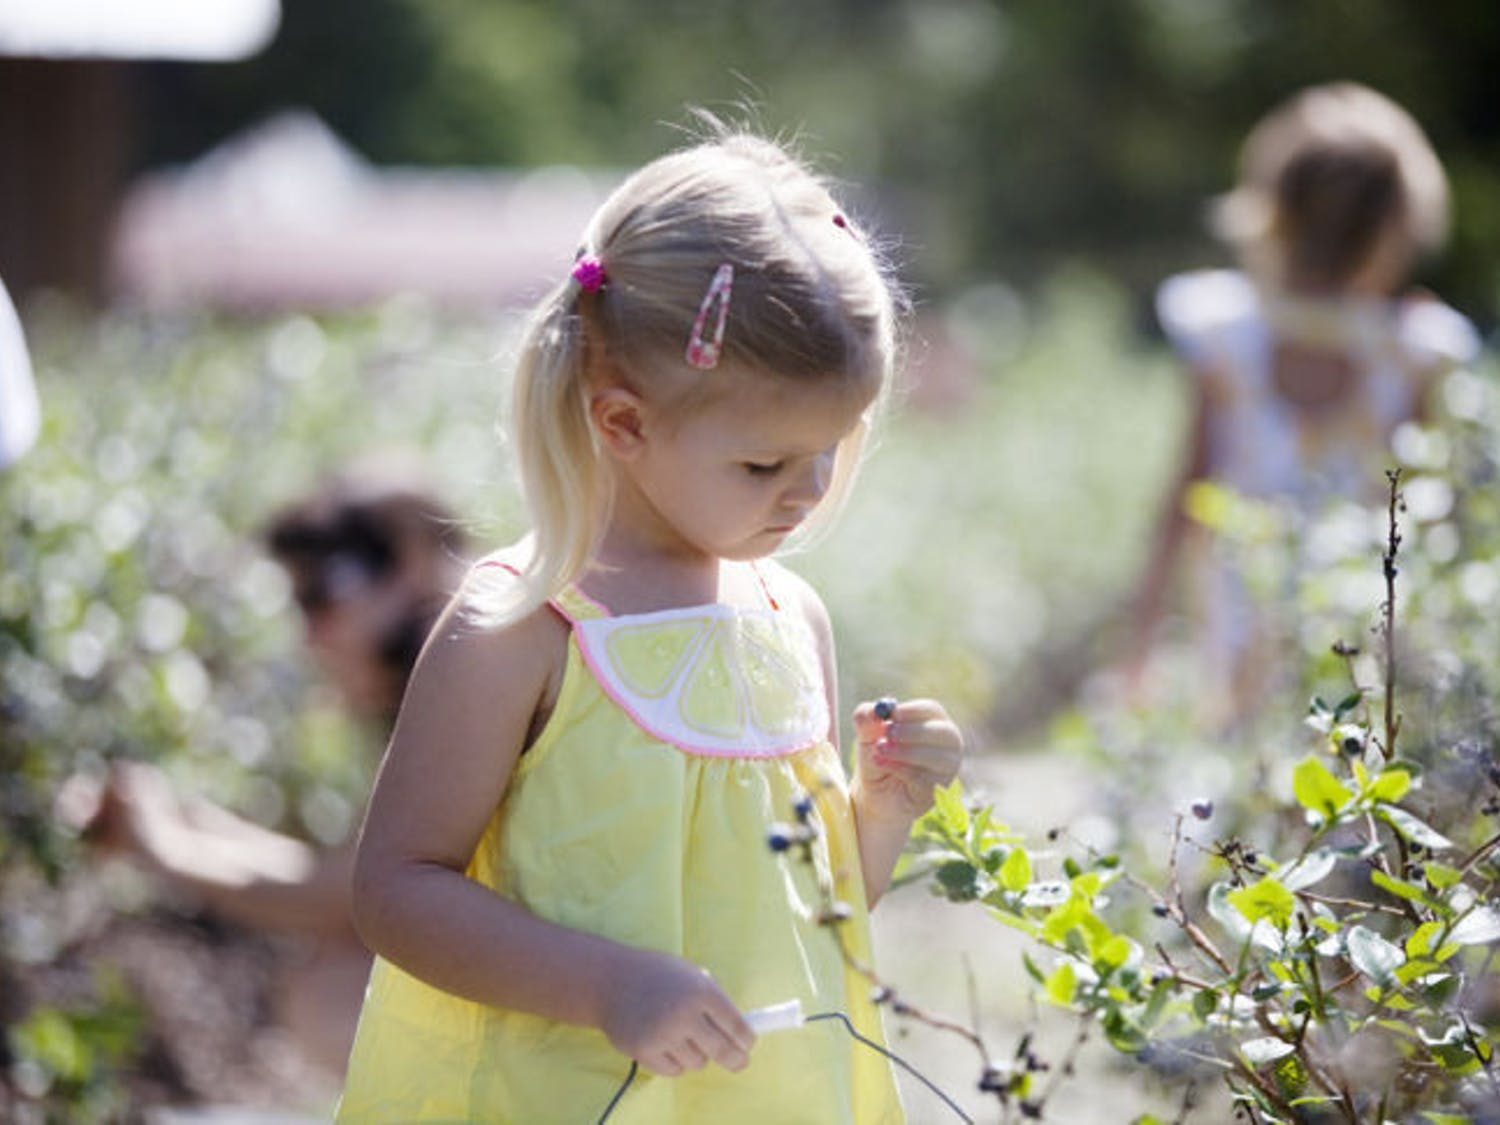 Julia Goodrich, 4, inspects a freshly picked blueberry at the 301 Blueberry Farm during its annual Blueberry Festival Saturday morning. Her mother, Meredith Goodrich, 39, said it's nice to be able to listen to live music while picking blueberries.